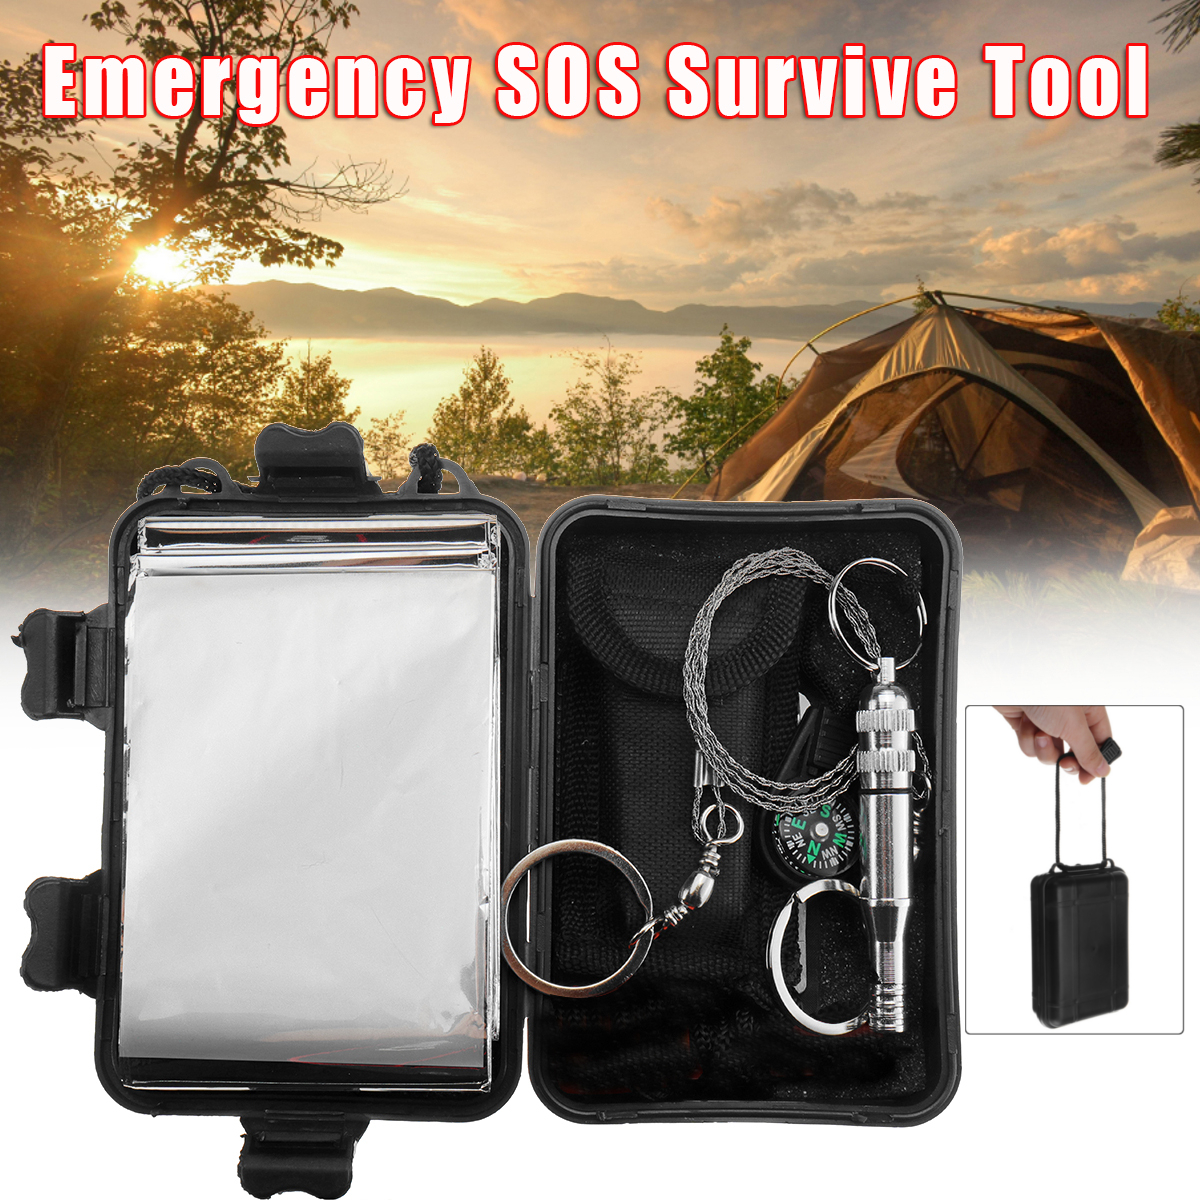 6 In 1 Emergenza SOS Survival Strumenti Kit EDC Strumento Multi-Purpose EDC Emergenza Strumenti Evereyday Carry Gear campeggio Kit